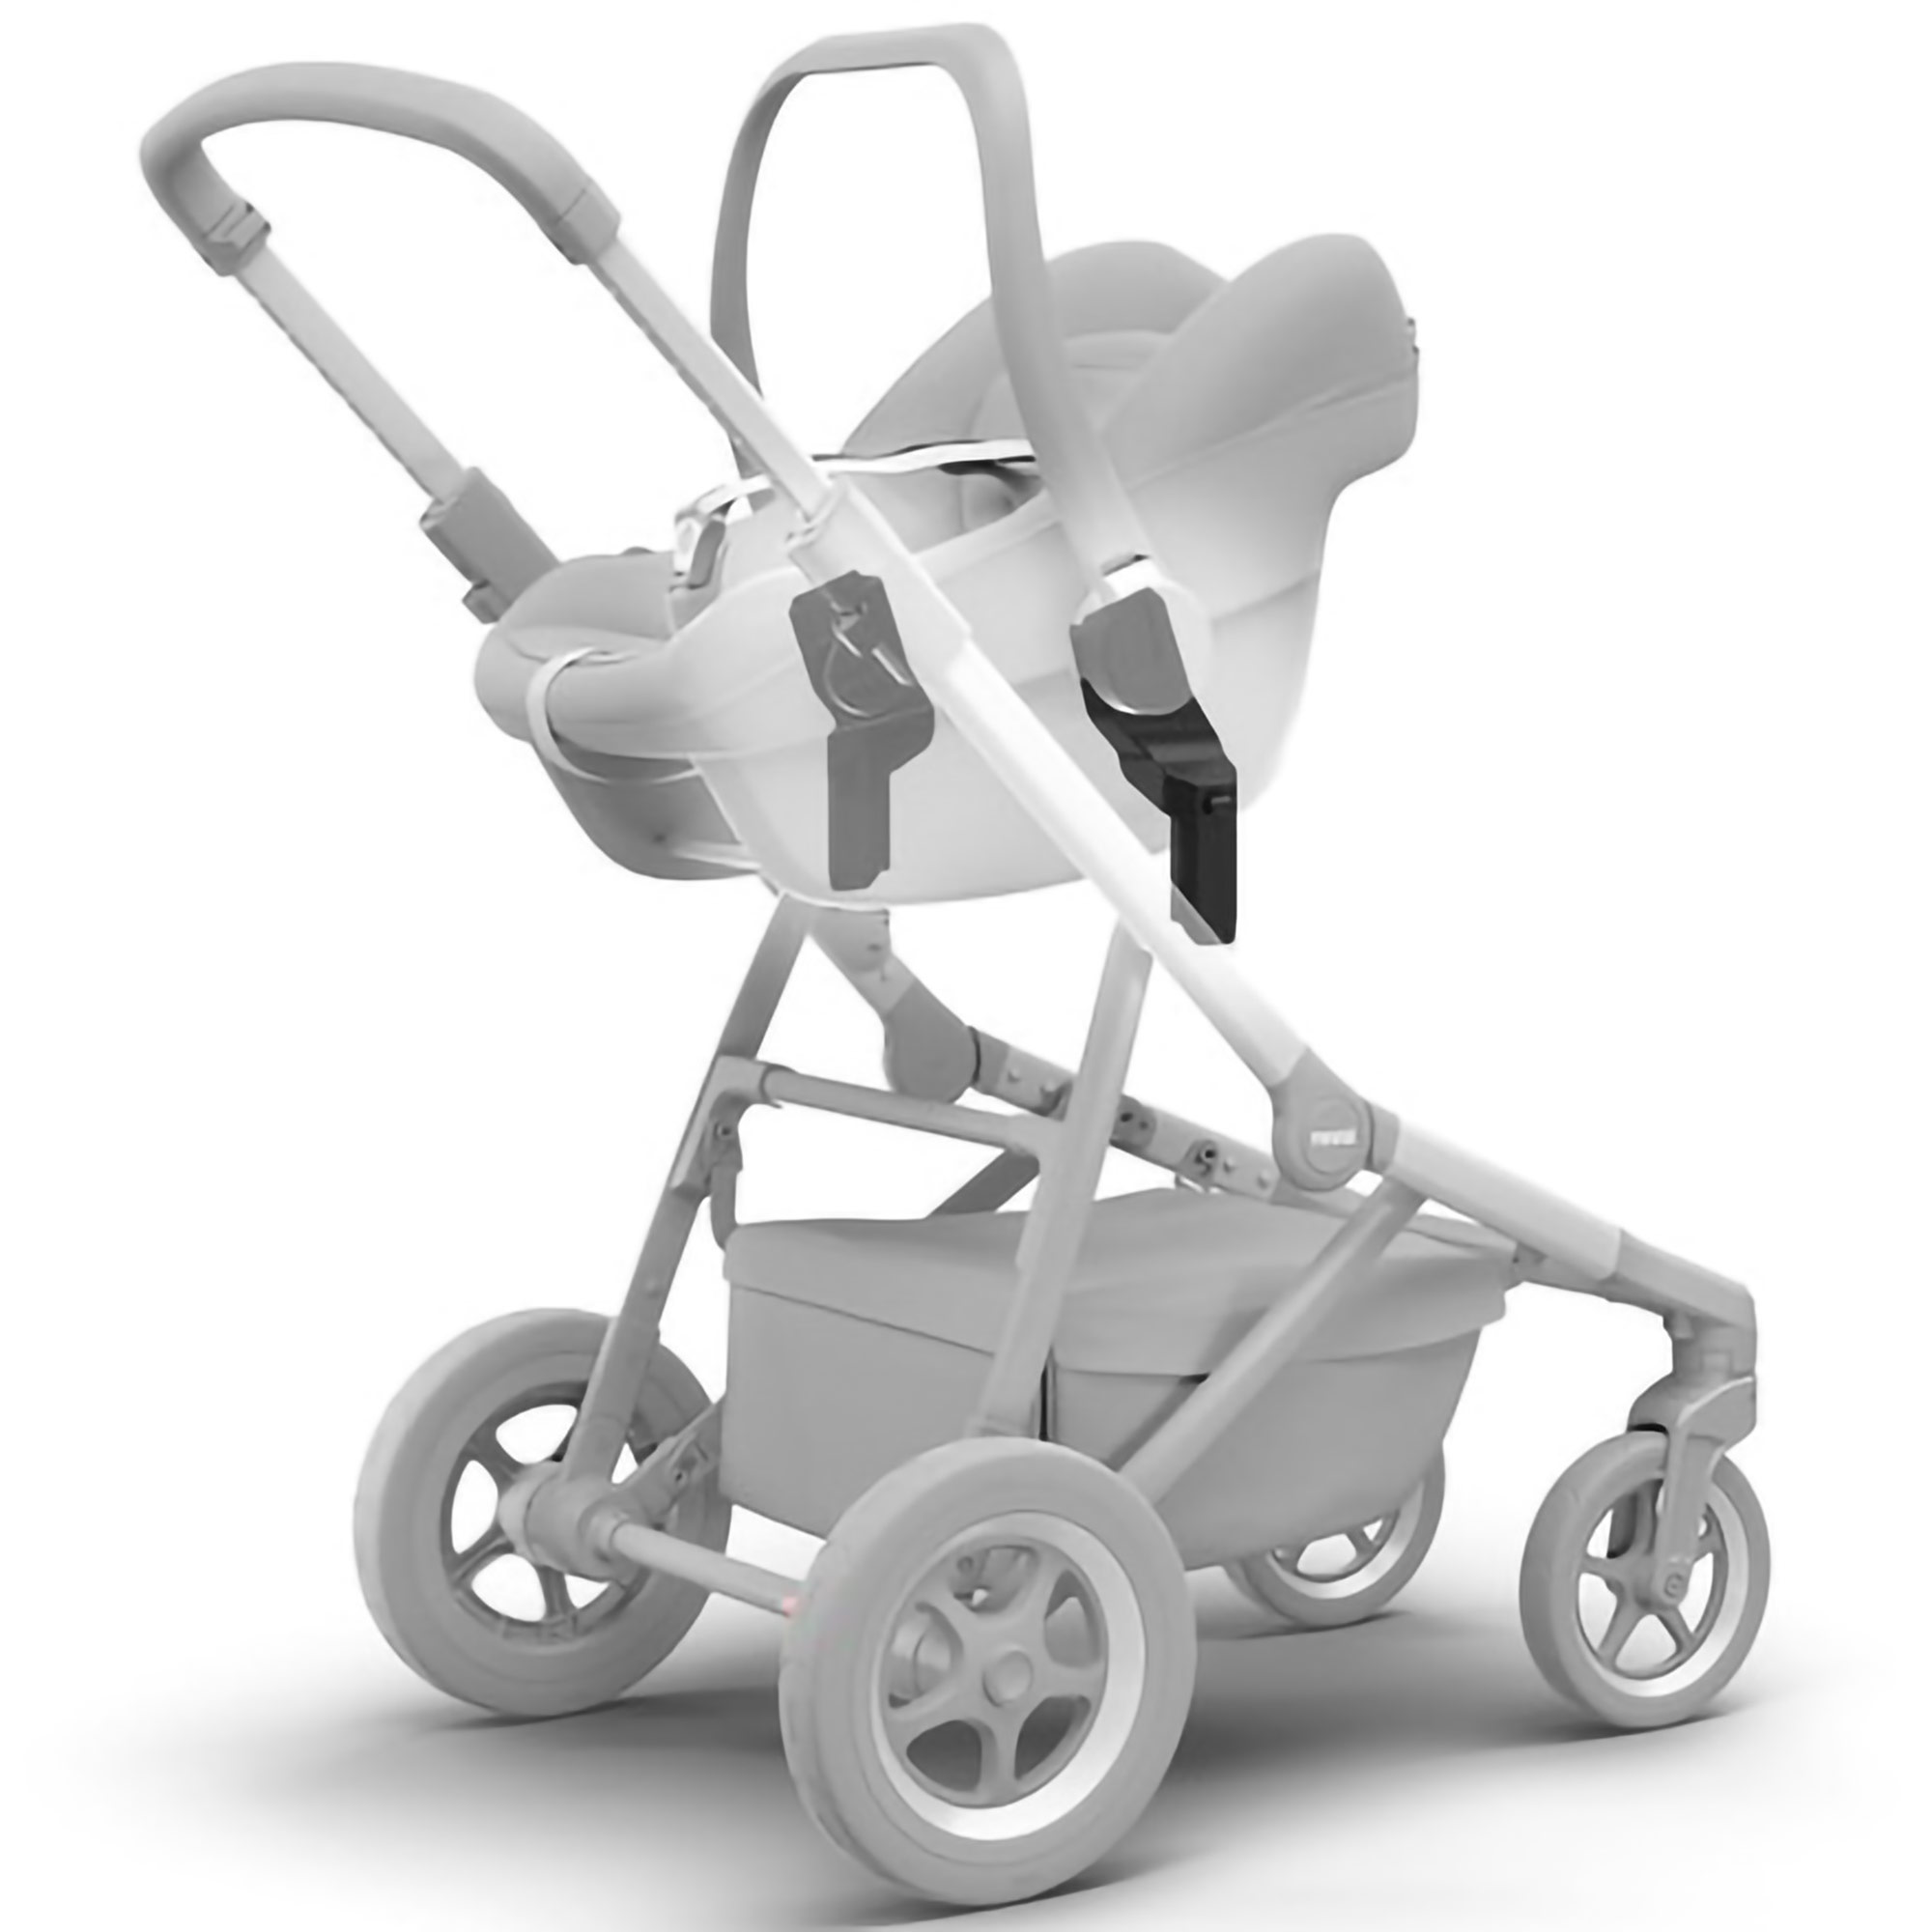 Out N About Nipper 360 Maxi Cosi Cabriofix Pebble Car Seat Adapters Adaptors